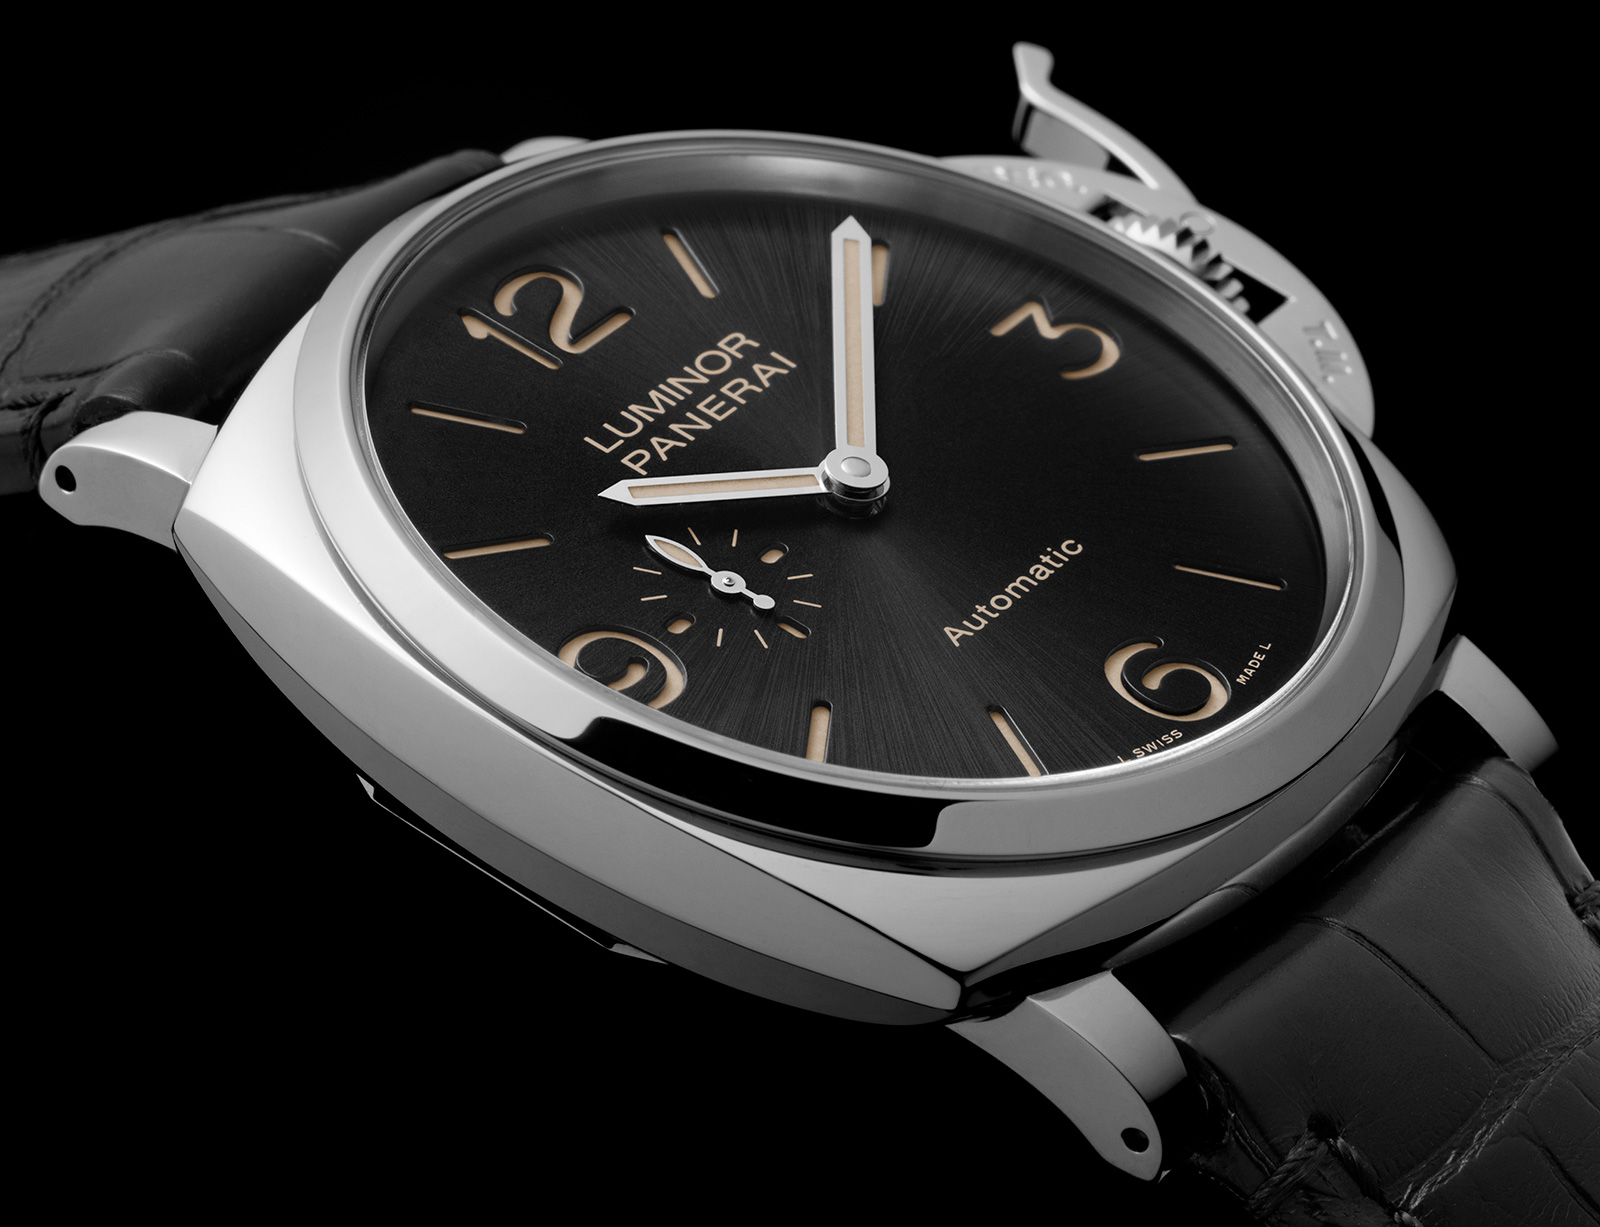 Panerai Luminor Due automatic 45mm PAM674 - 1